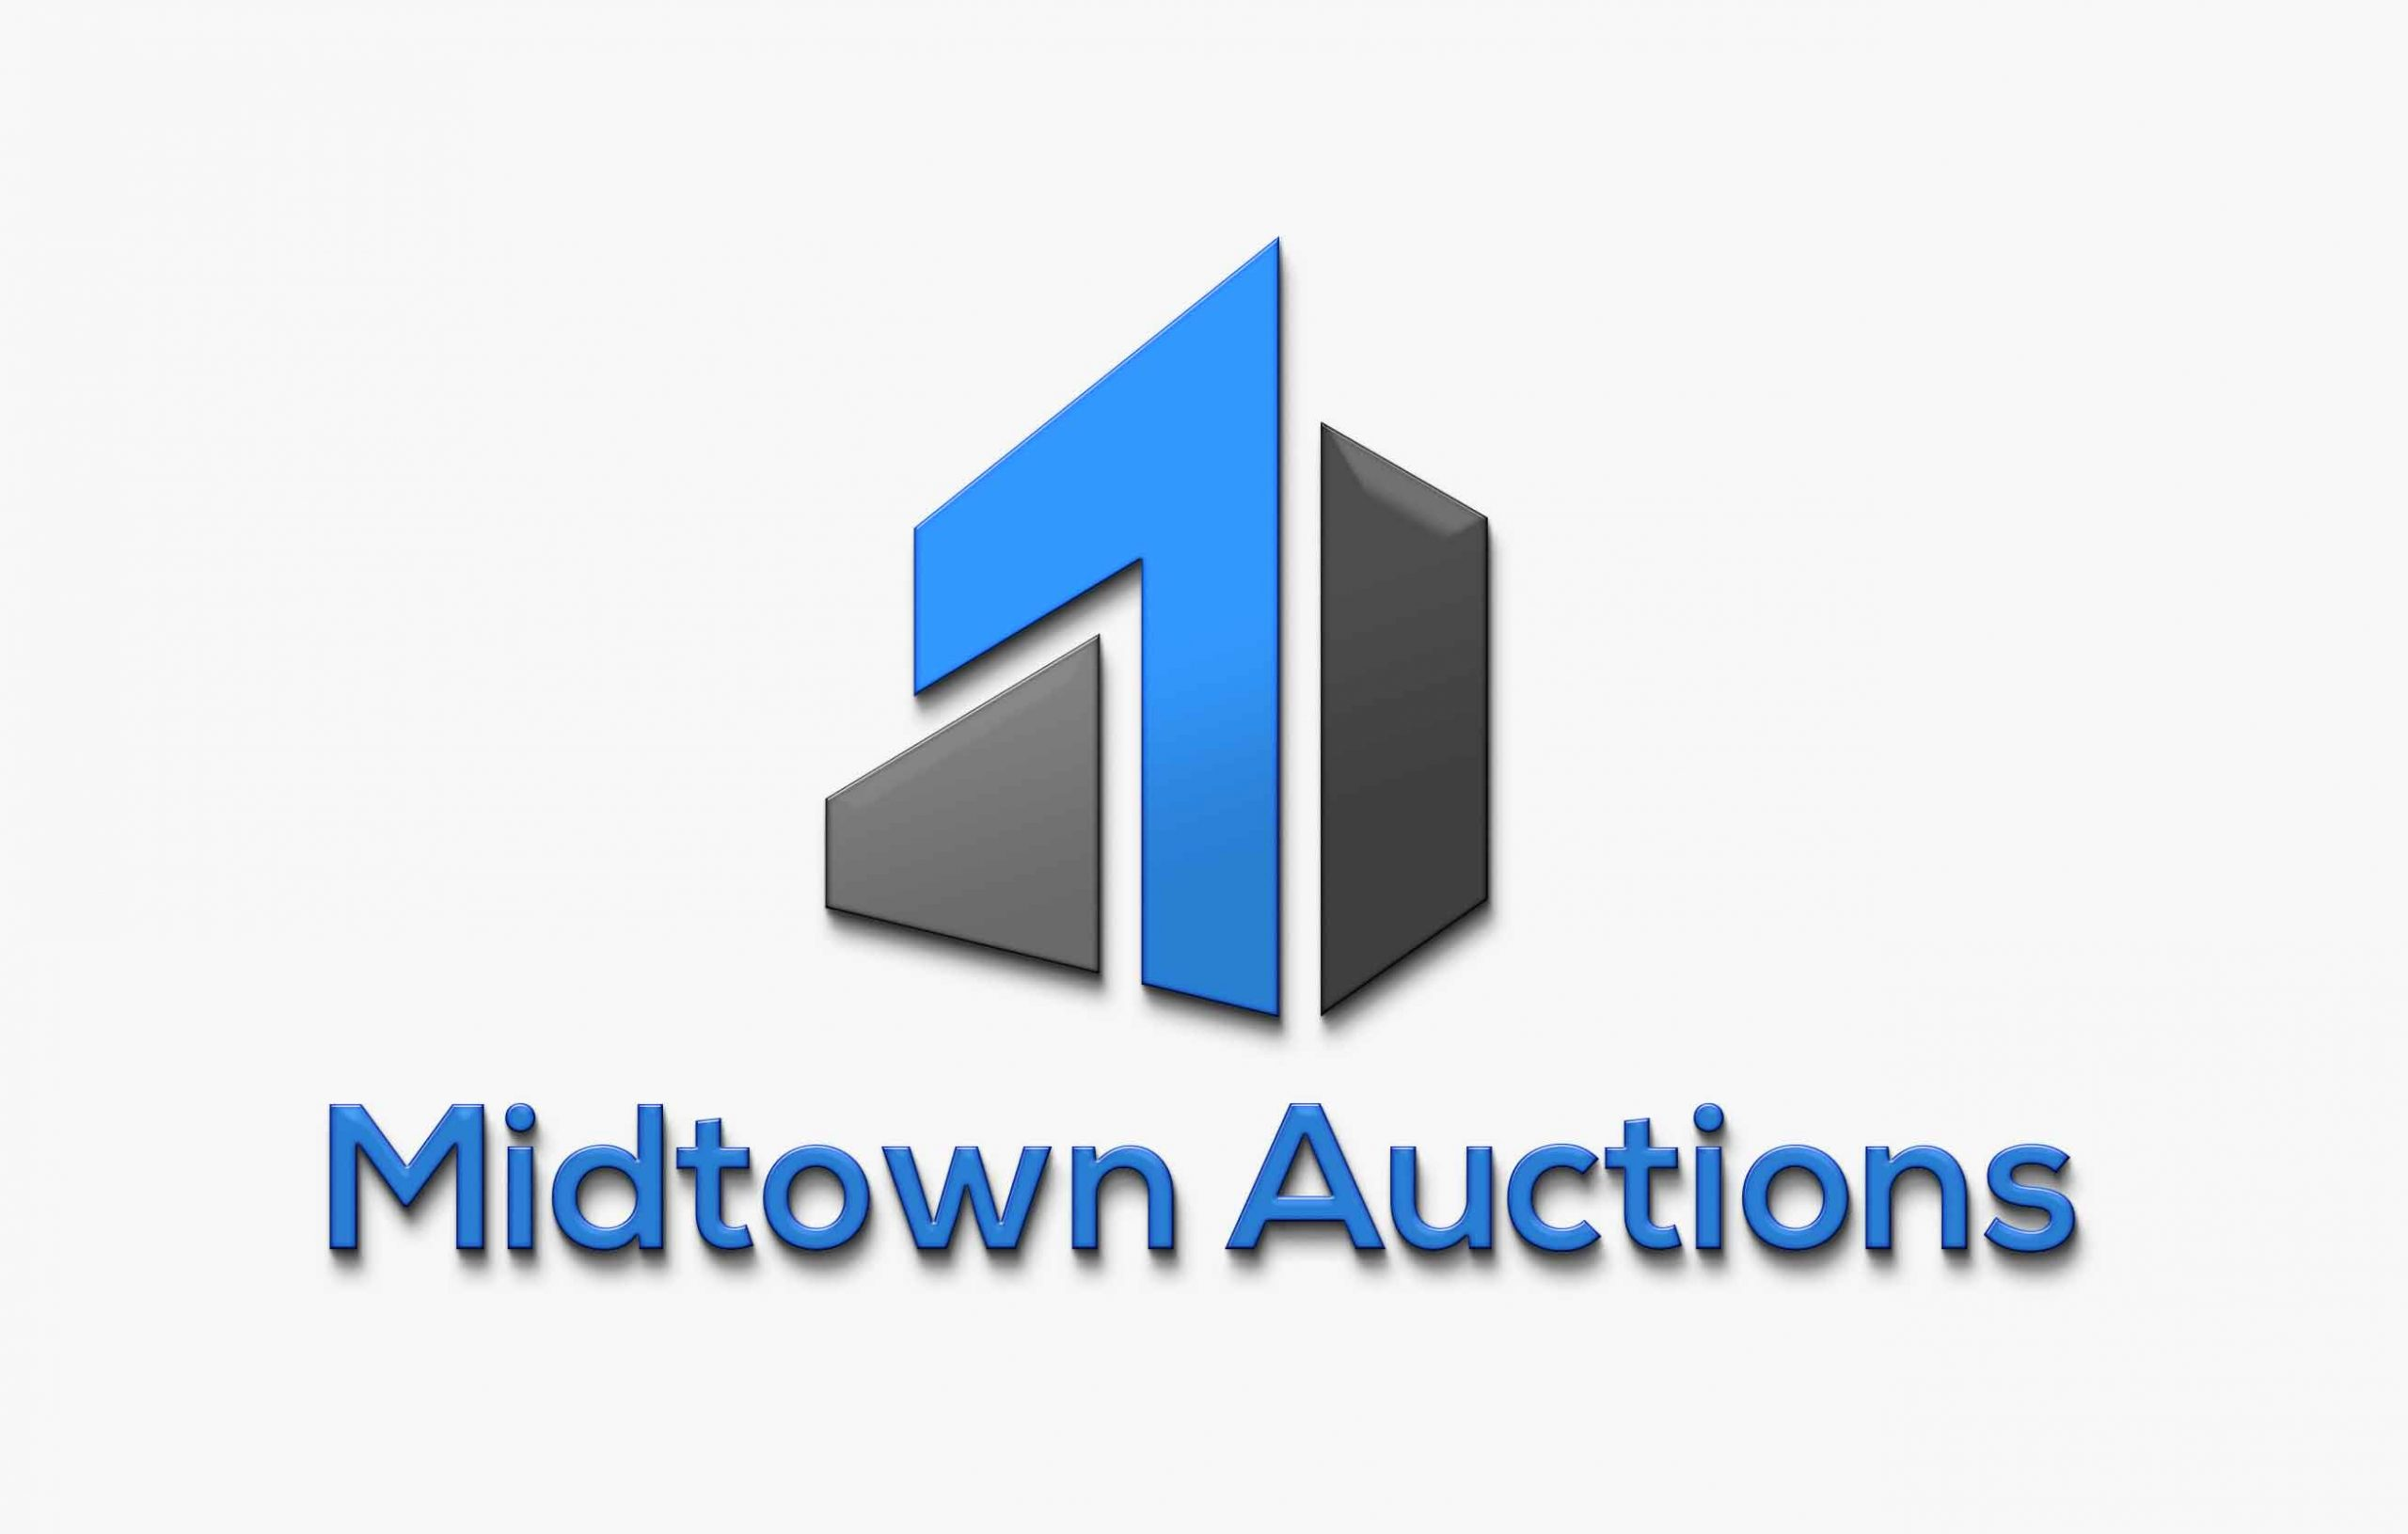 Logo for Midtown Auction. Logo consists of blue and gray colors resembling a building structure. The text Midtown Auctions rests below the logo.